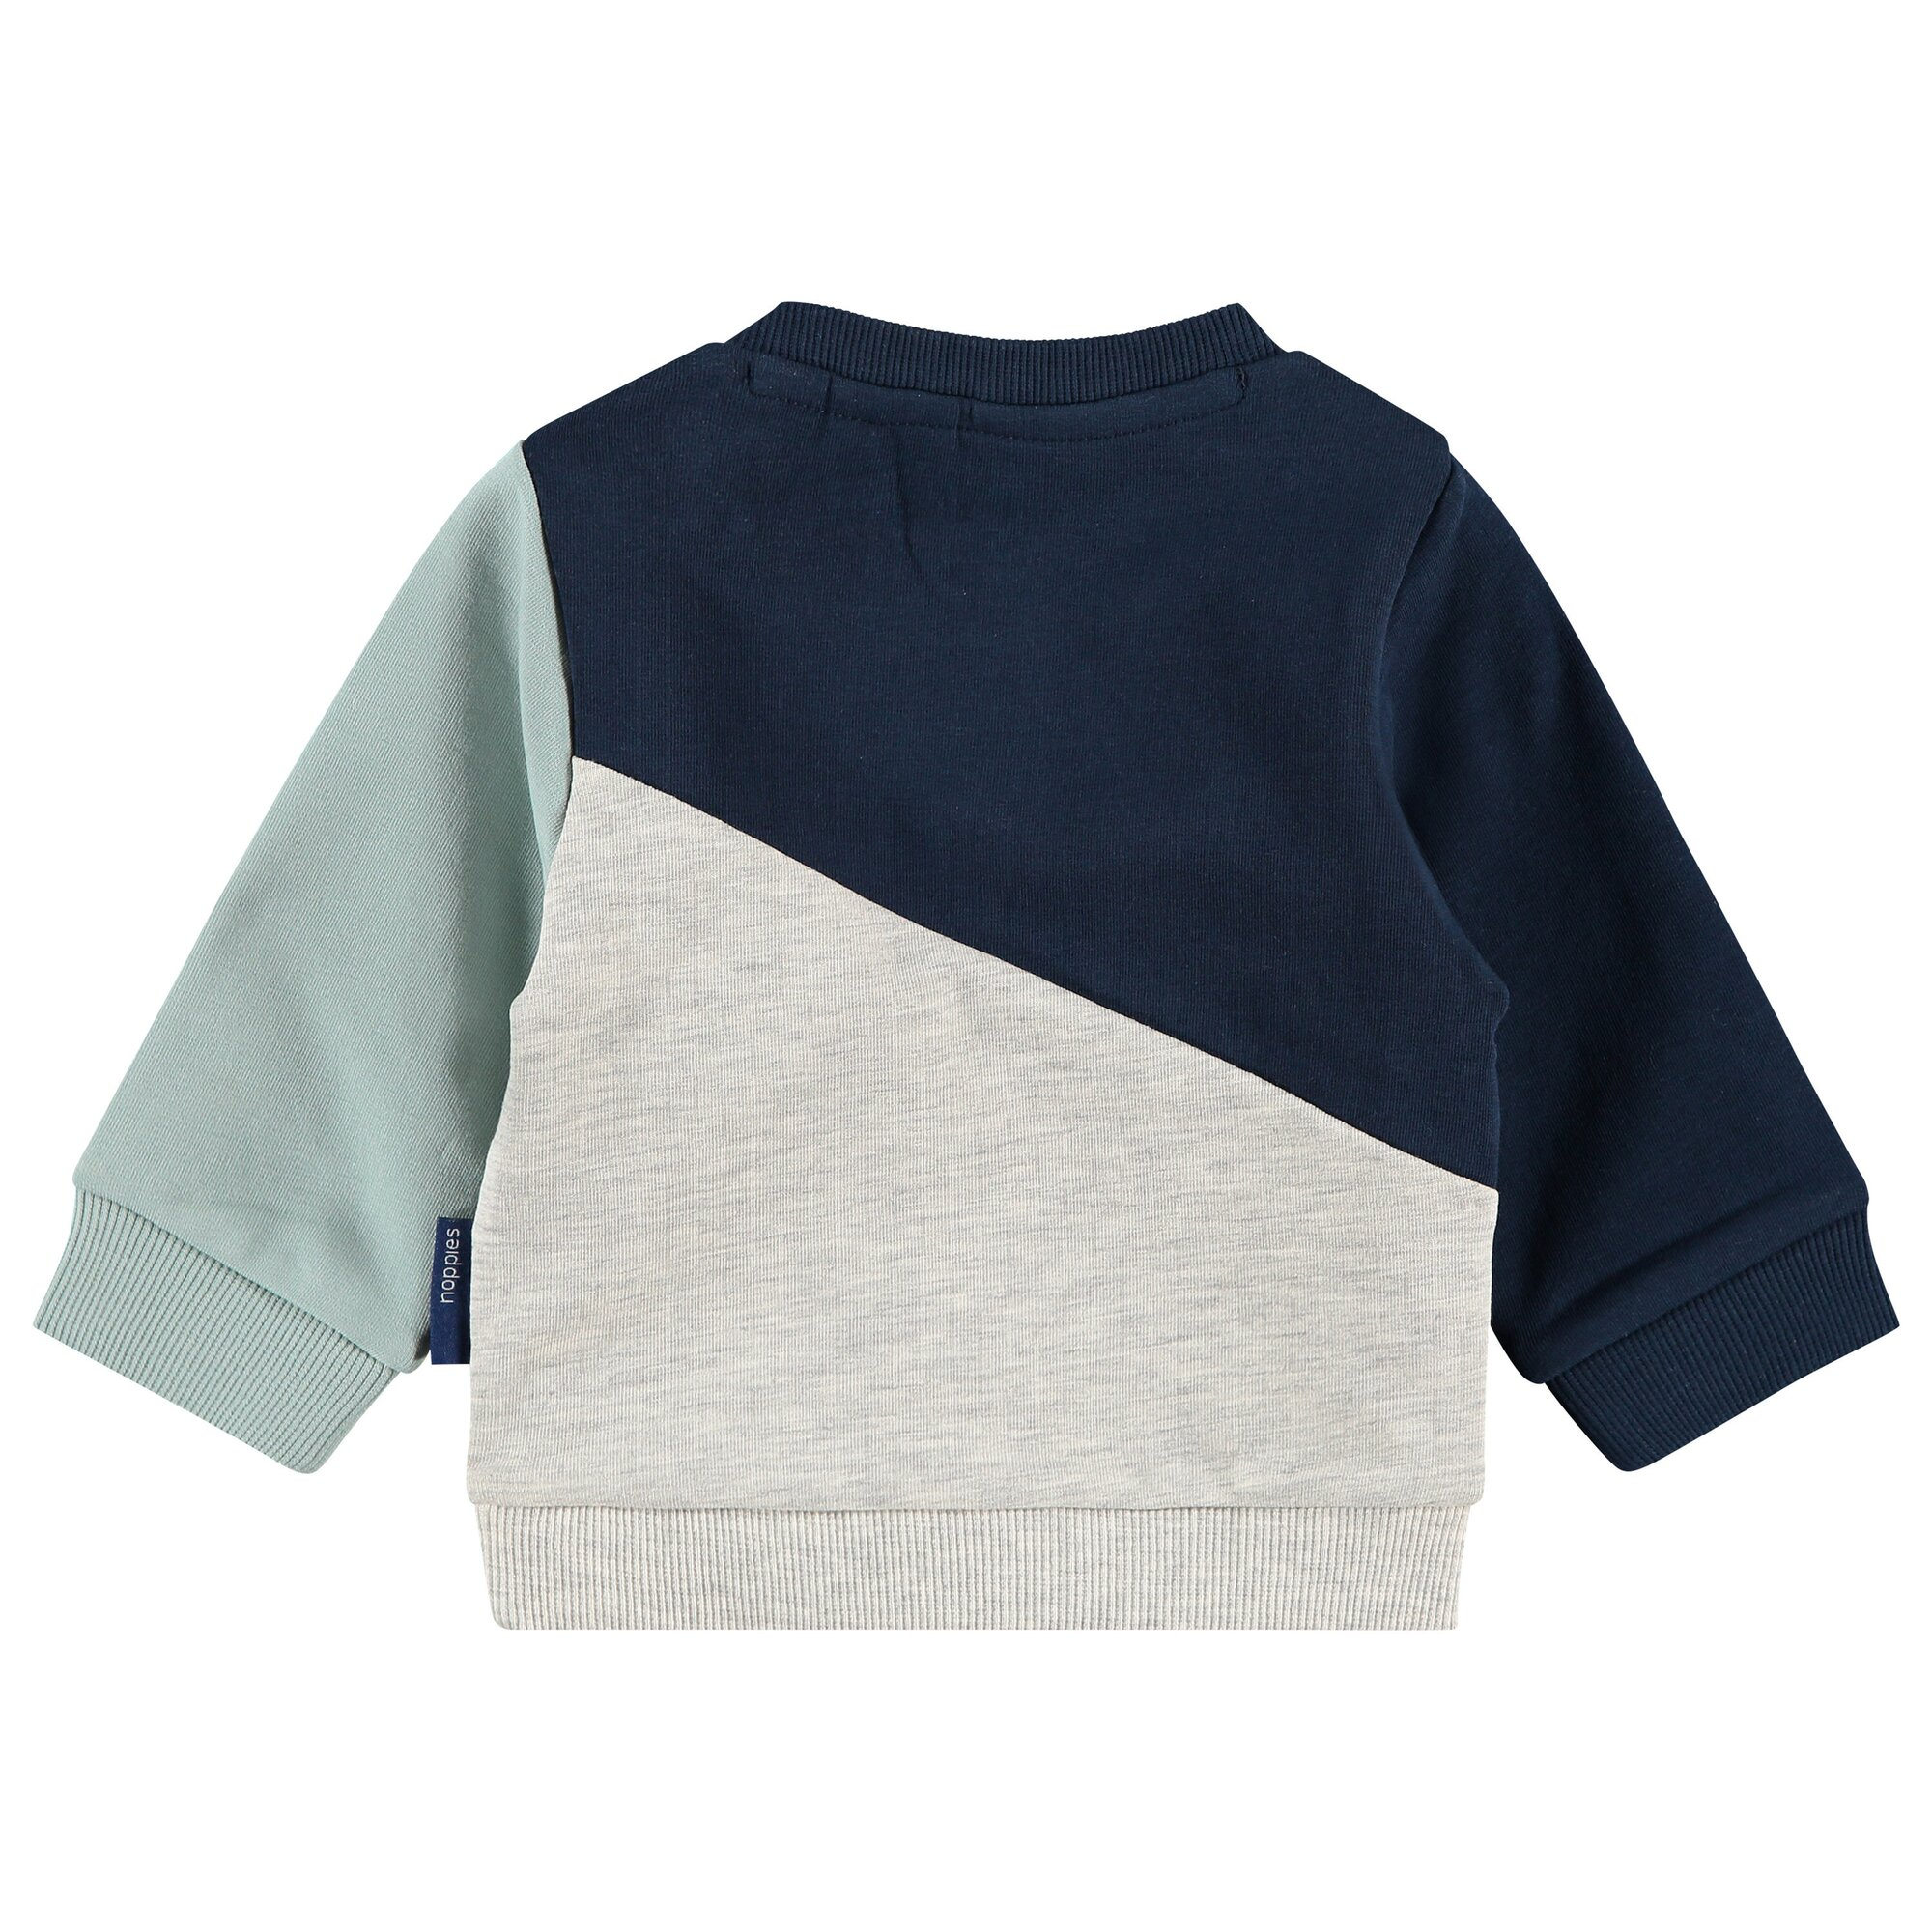 noppies-sweater-kettering, 22.99 EUR @ babywalz-de